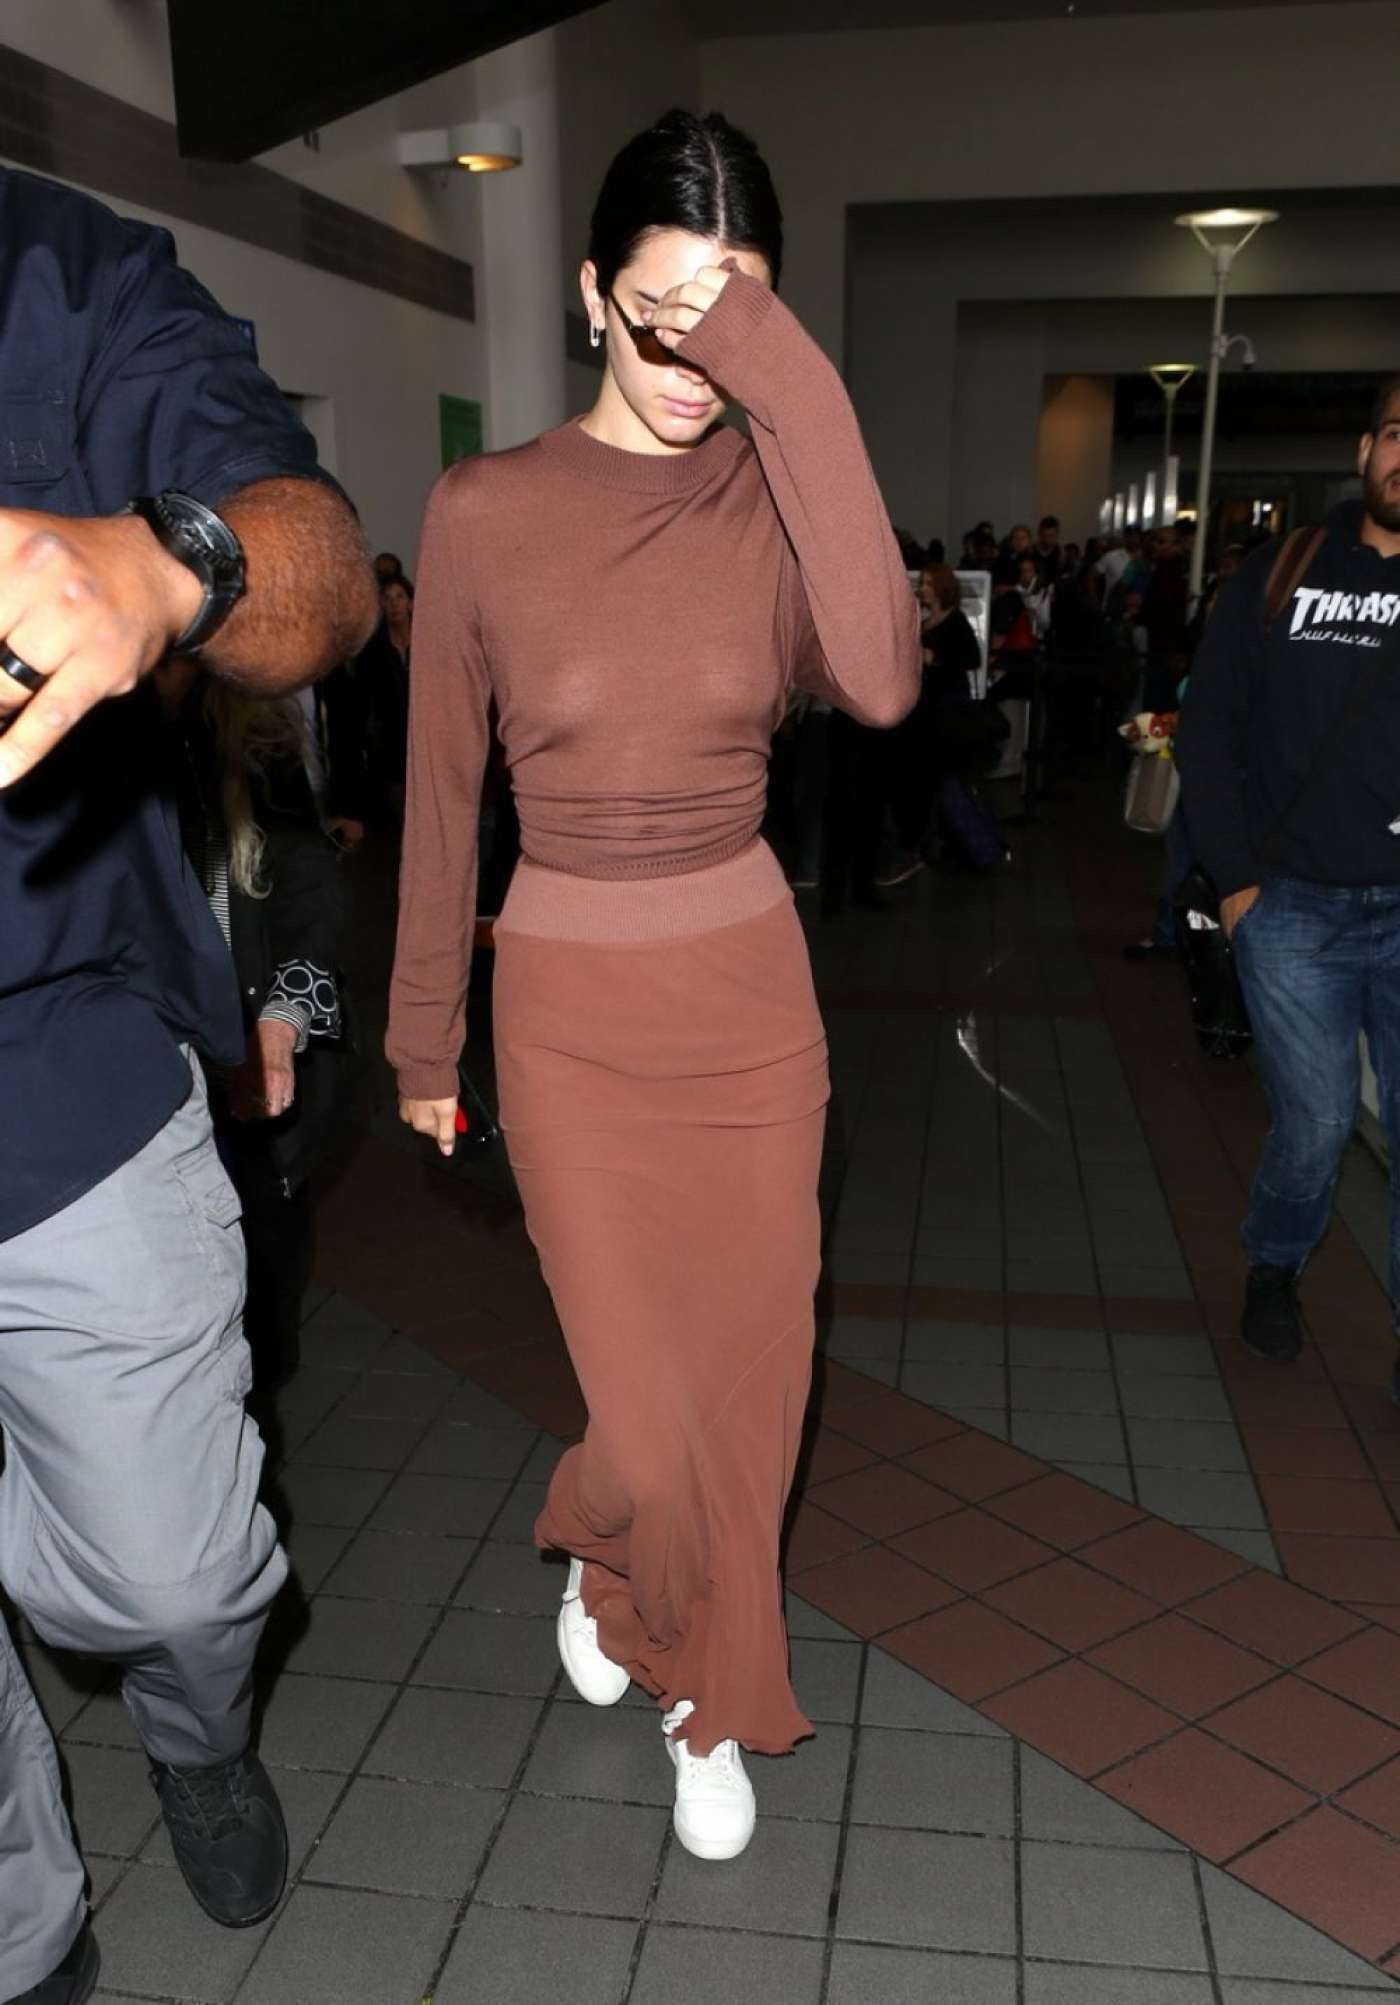 Kendall Jenner in Long Skirt at LAX Airport in LA